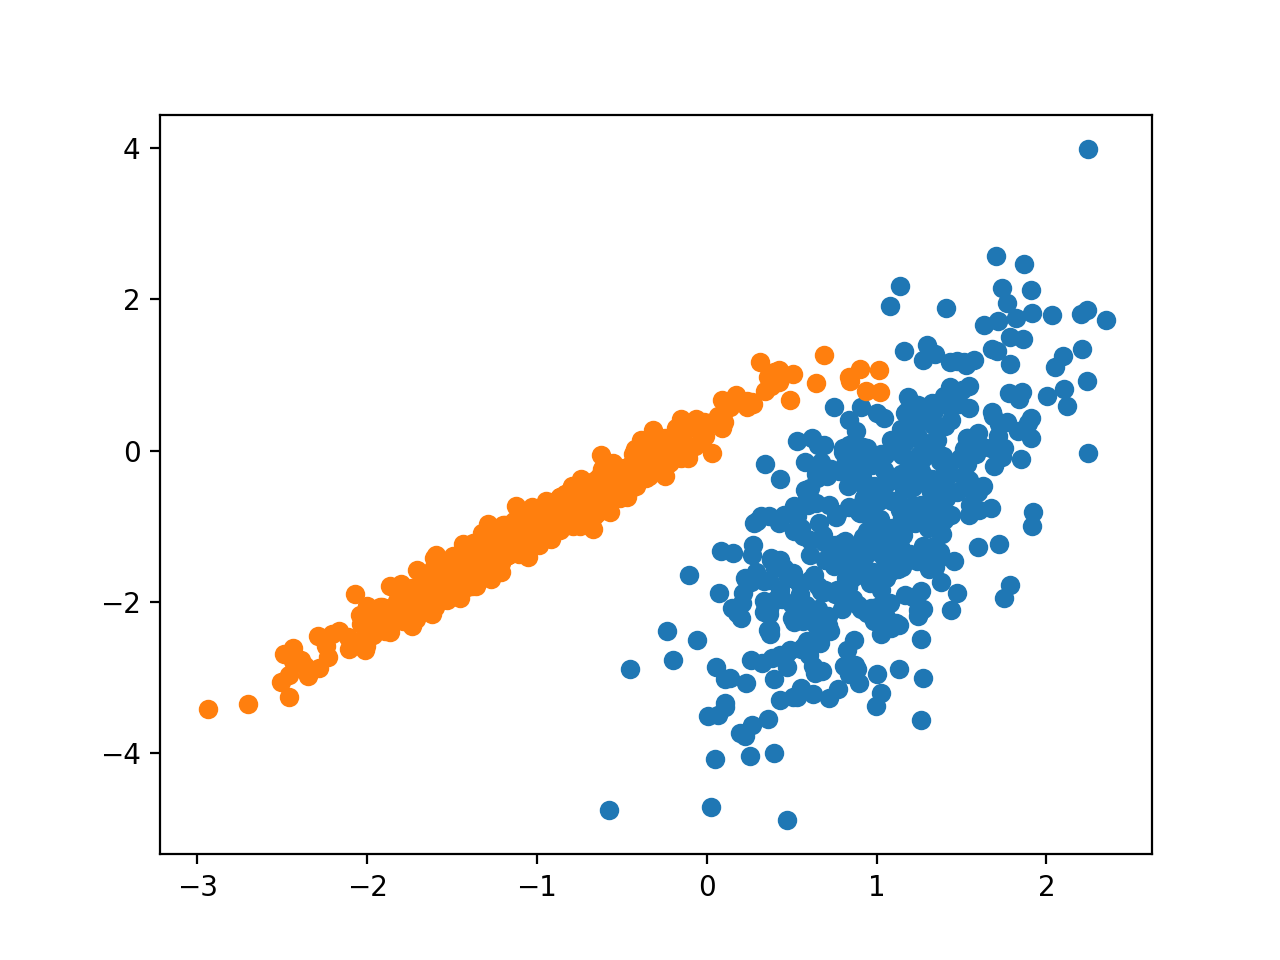 Scatter Plot of Dataset With Clusters Identified Using BIRCH Clustering